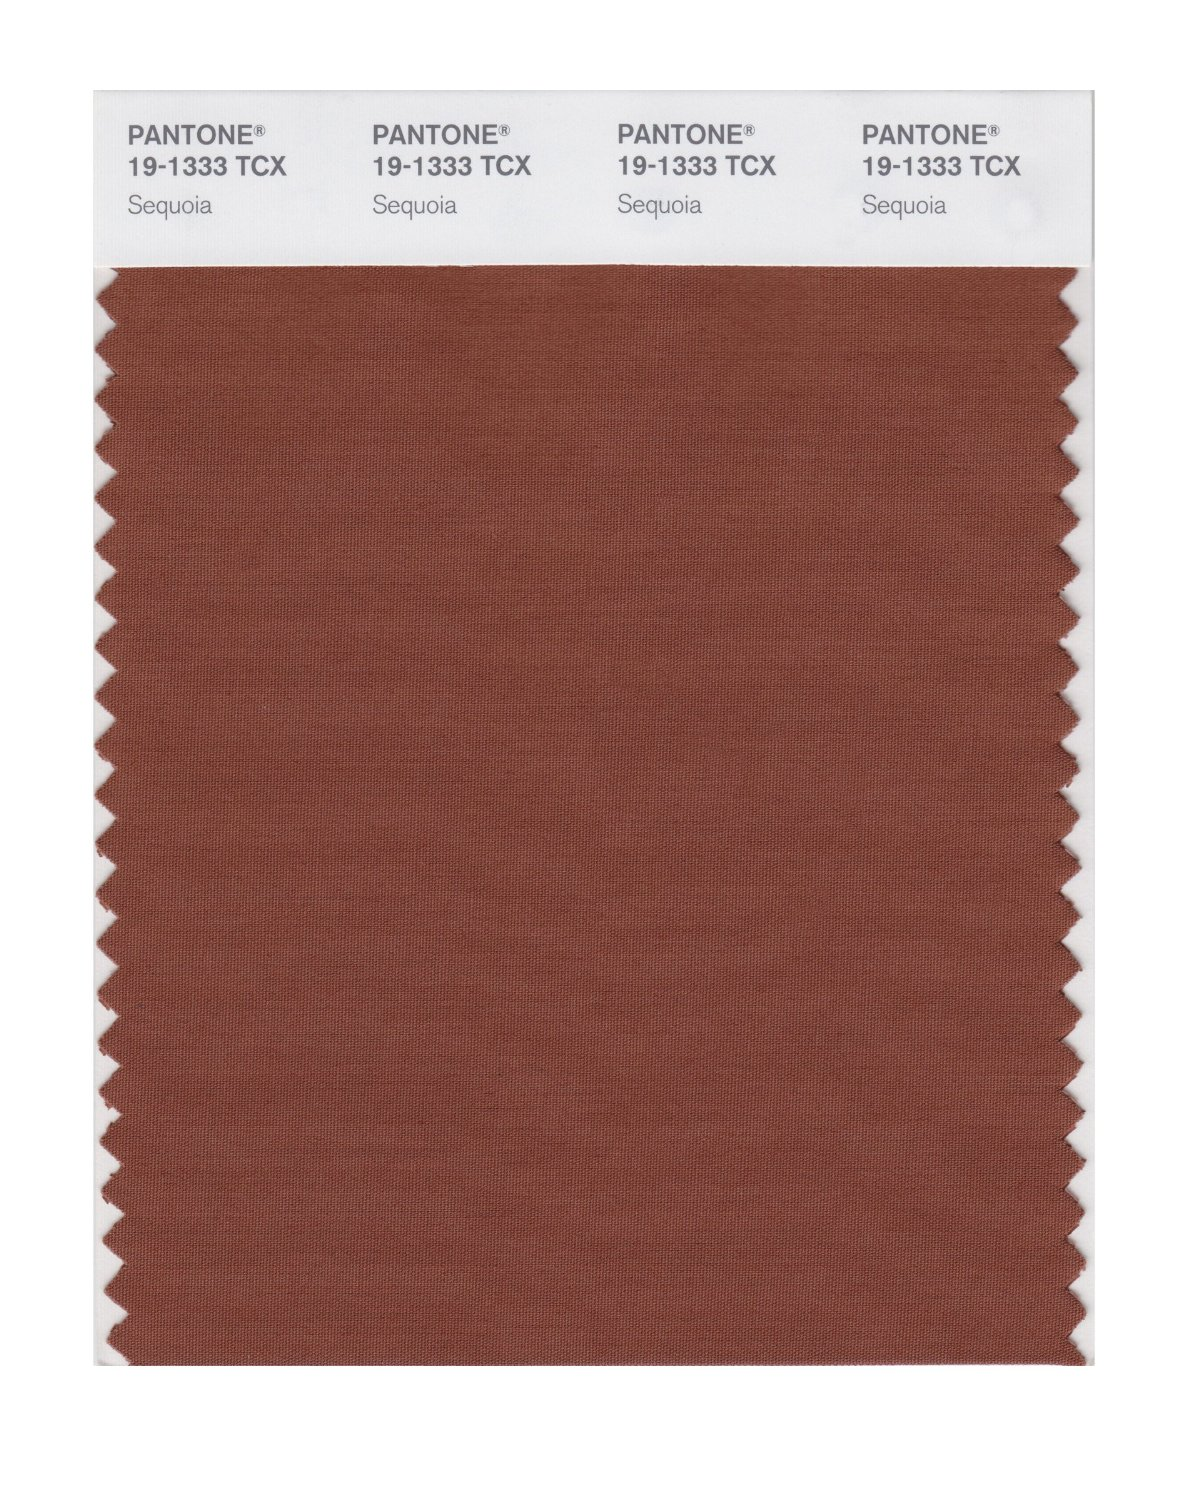 Pantone Smart Swatch 19-1333 Sequoia